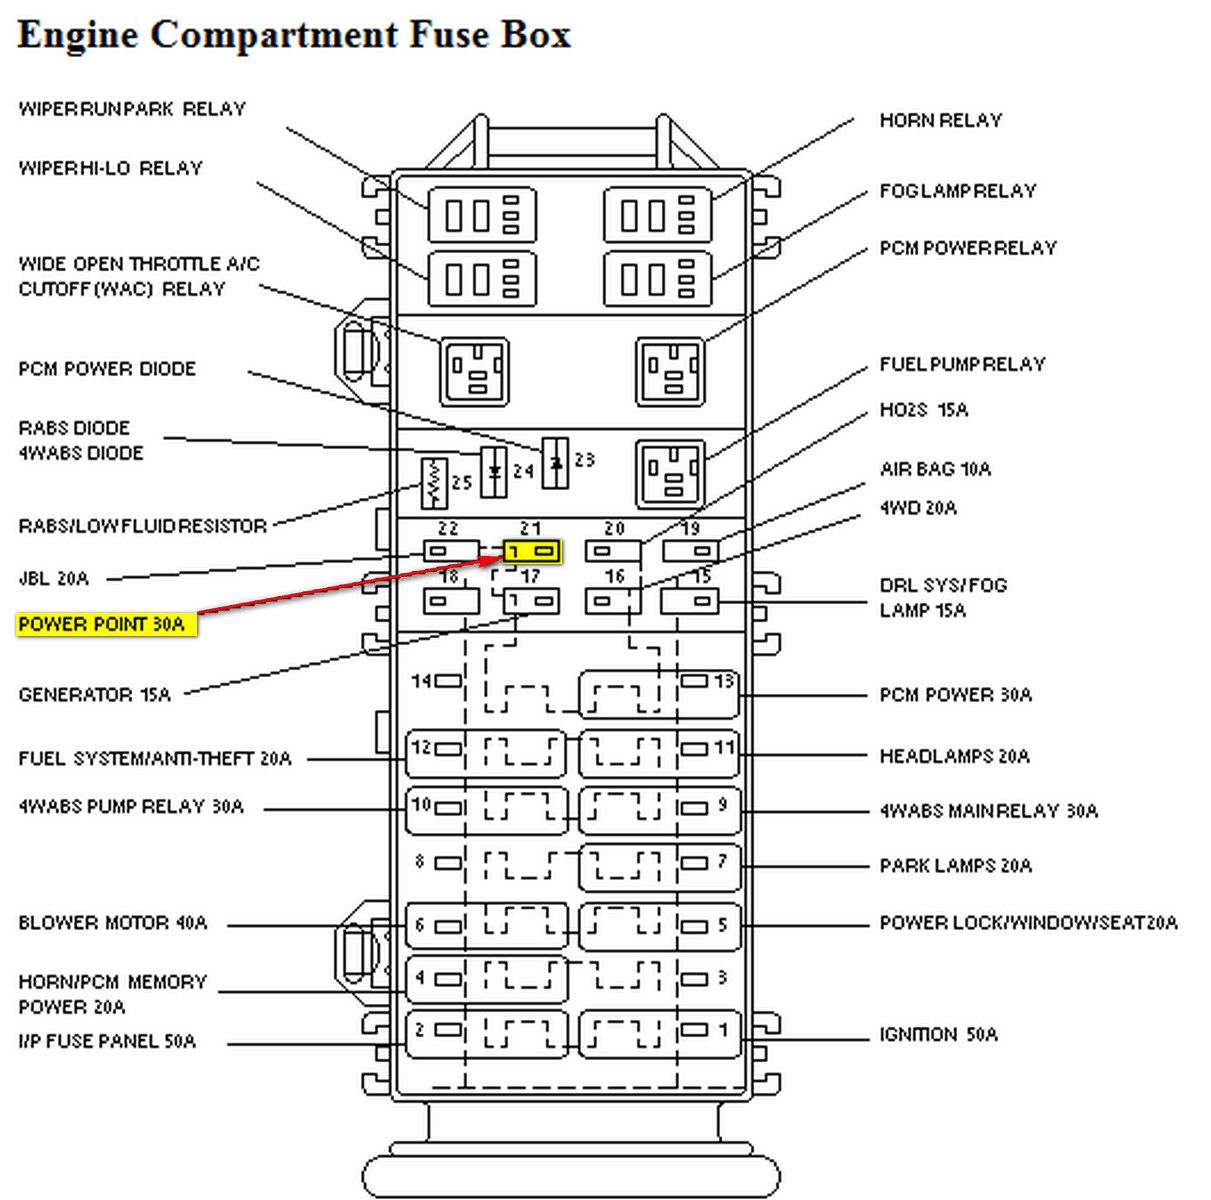 8a55967da7ae1bd251b795845886bd24 2002 ford ranger fuse diagram 1997 ford ranger fuse box diagram 2012 ford edge fuse box diagram at crackthecode.co